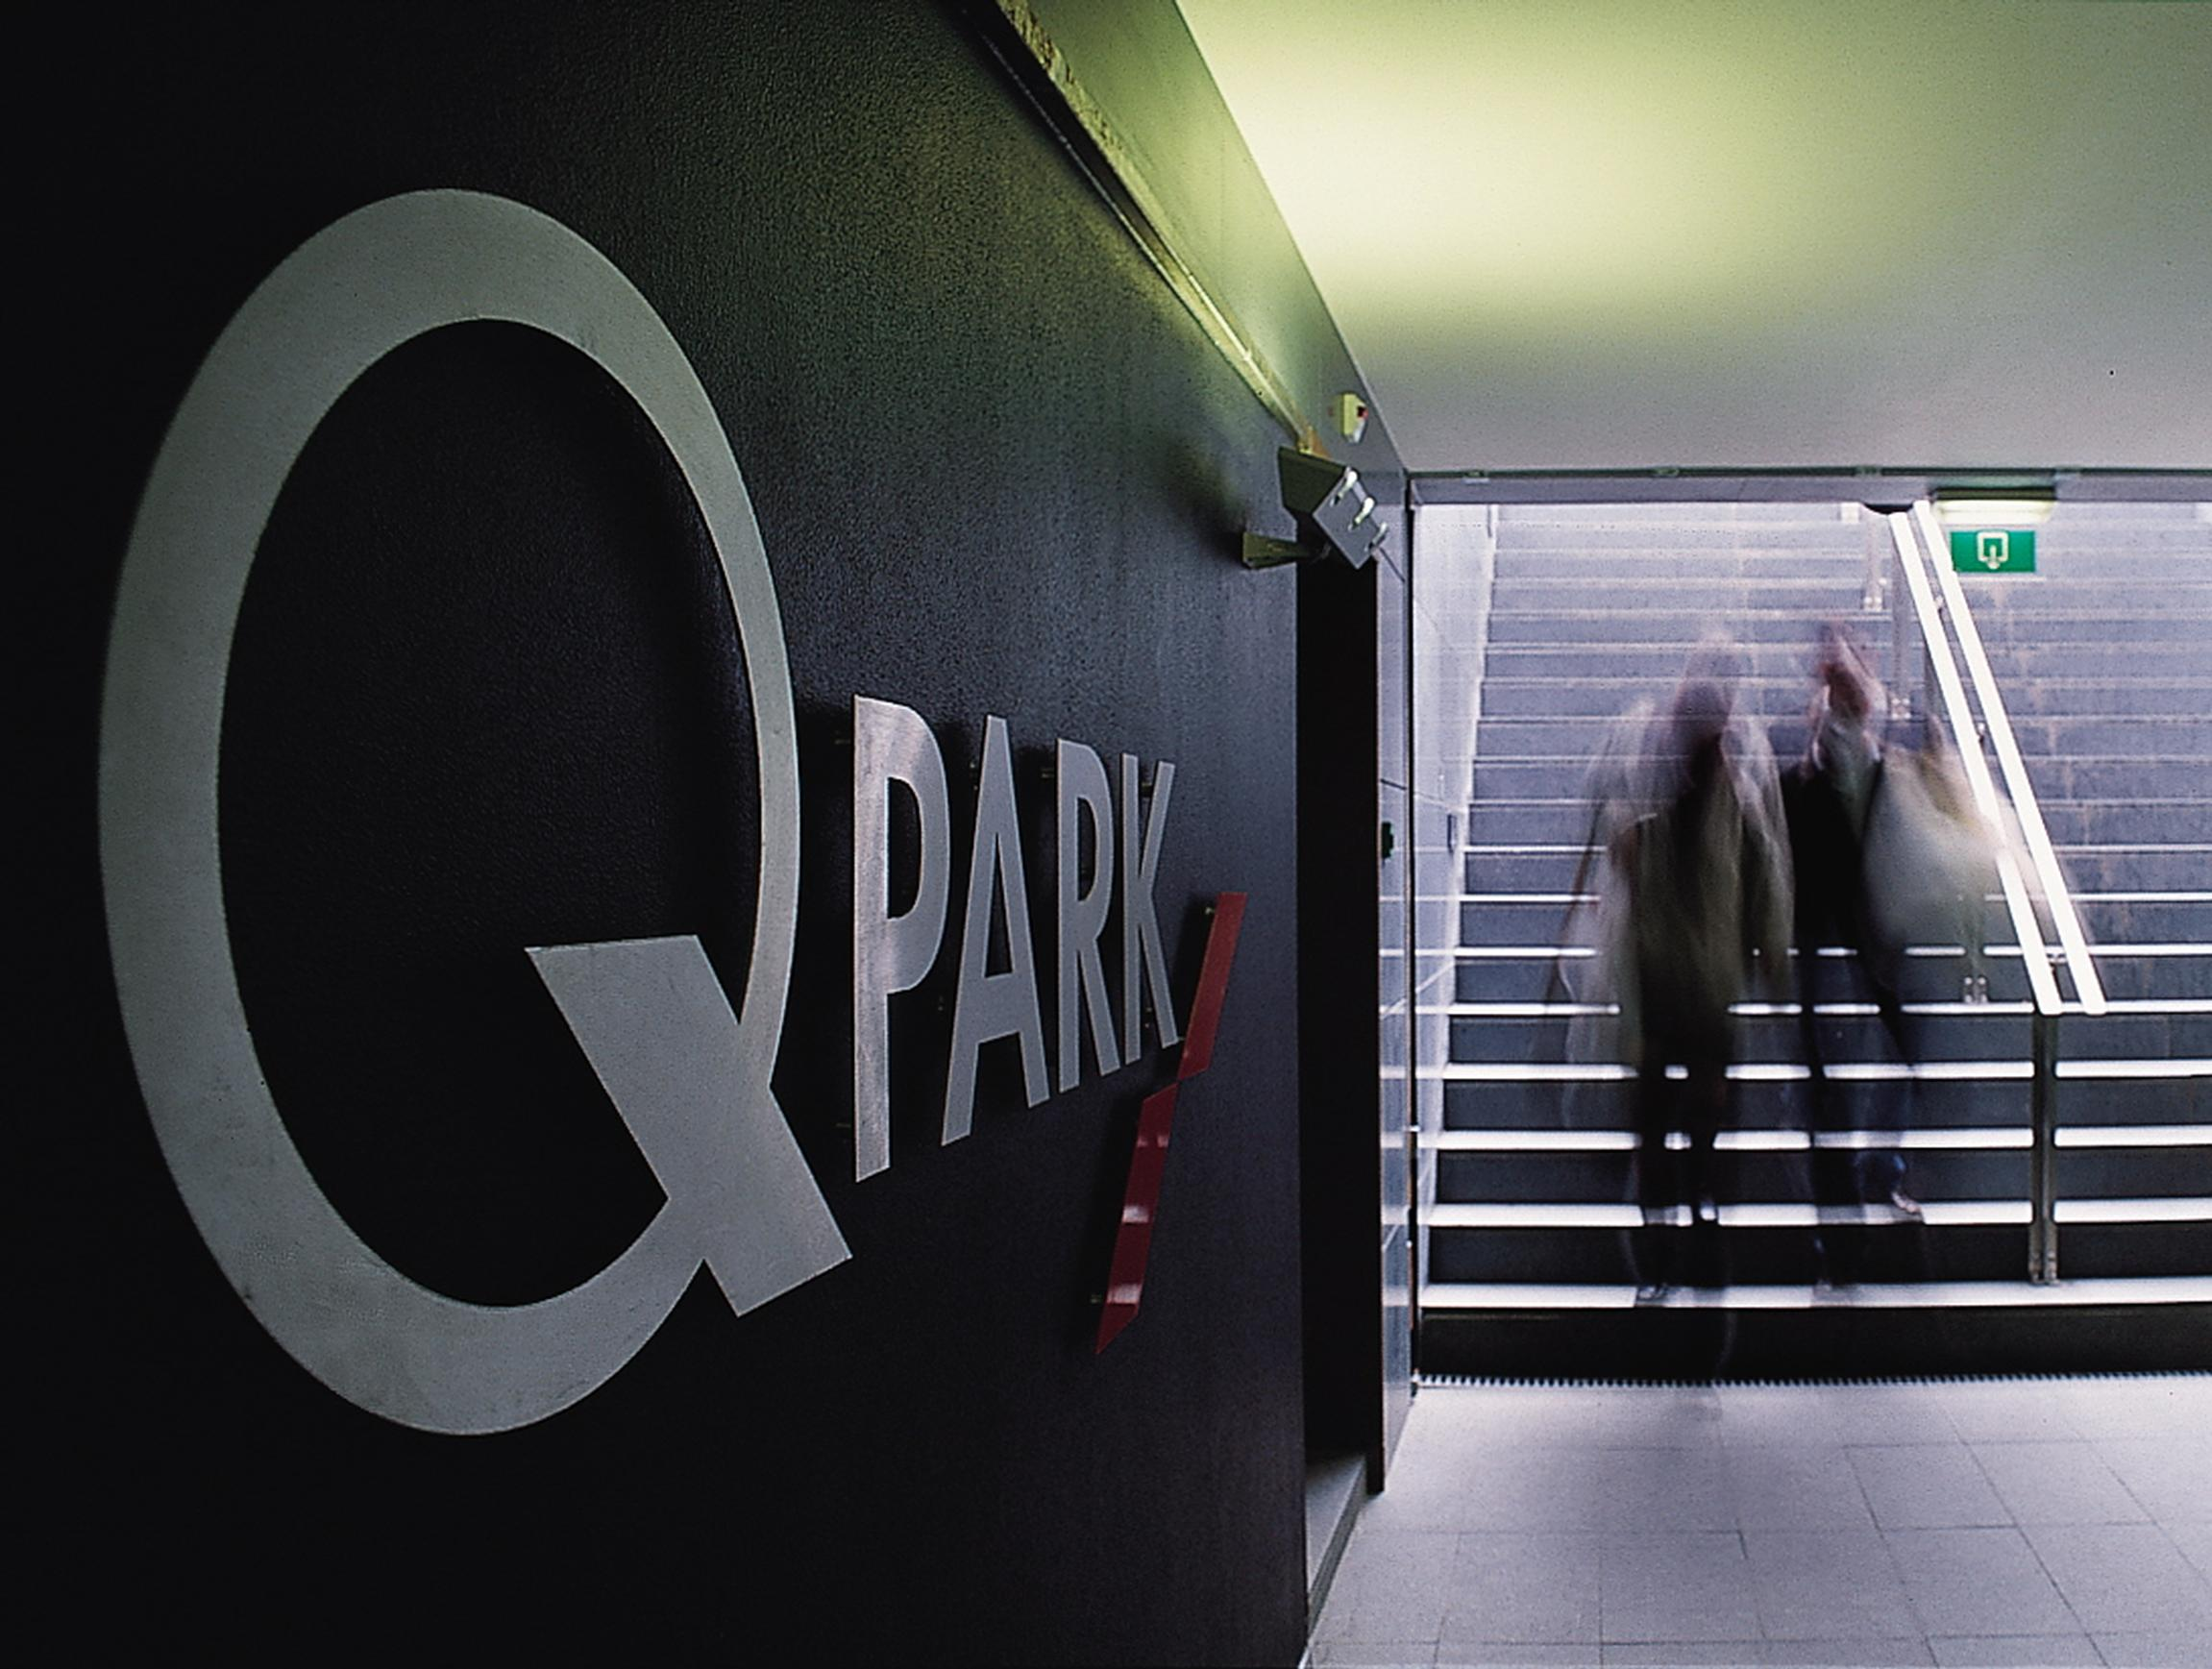 ParkCloud has added 21 Q-Park sites across Ireland to its booking platform